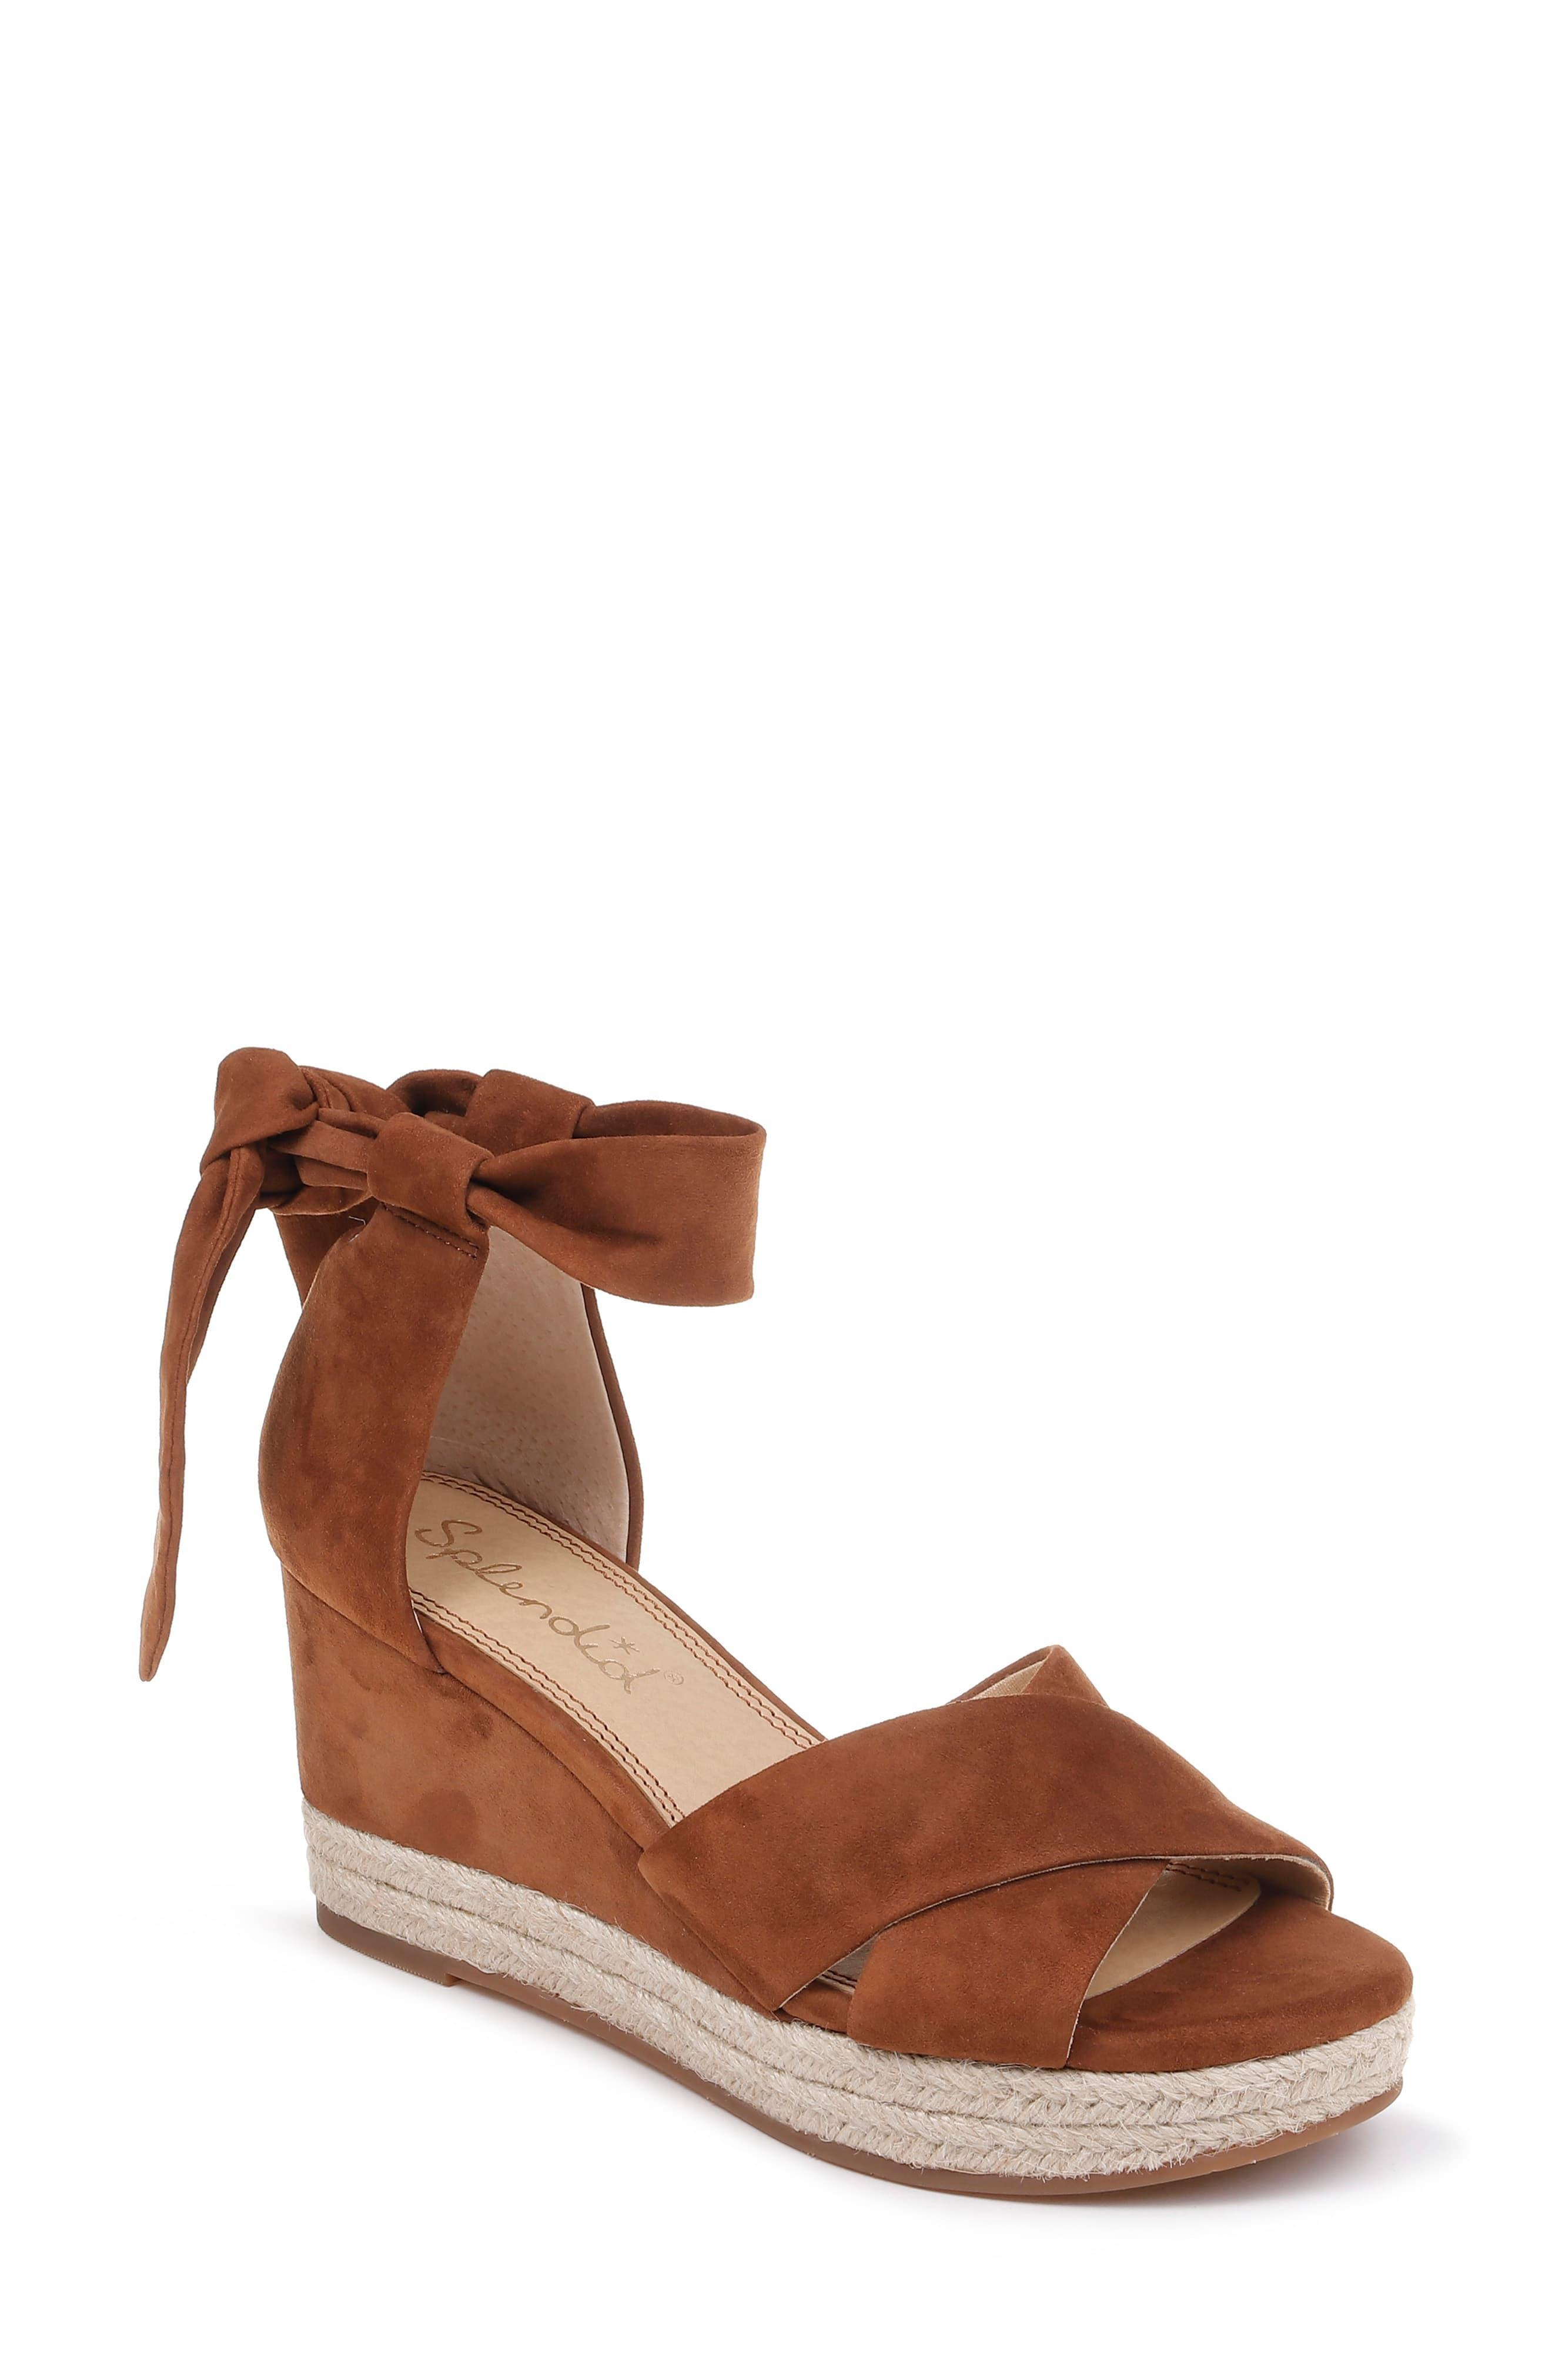 a69a662483 Splendid Terrence Ankle Wrap Wedge Sandal in Brown - Save 30% - Lyst